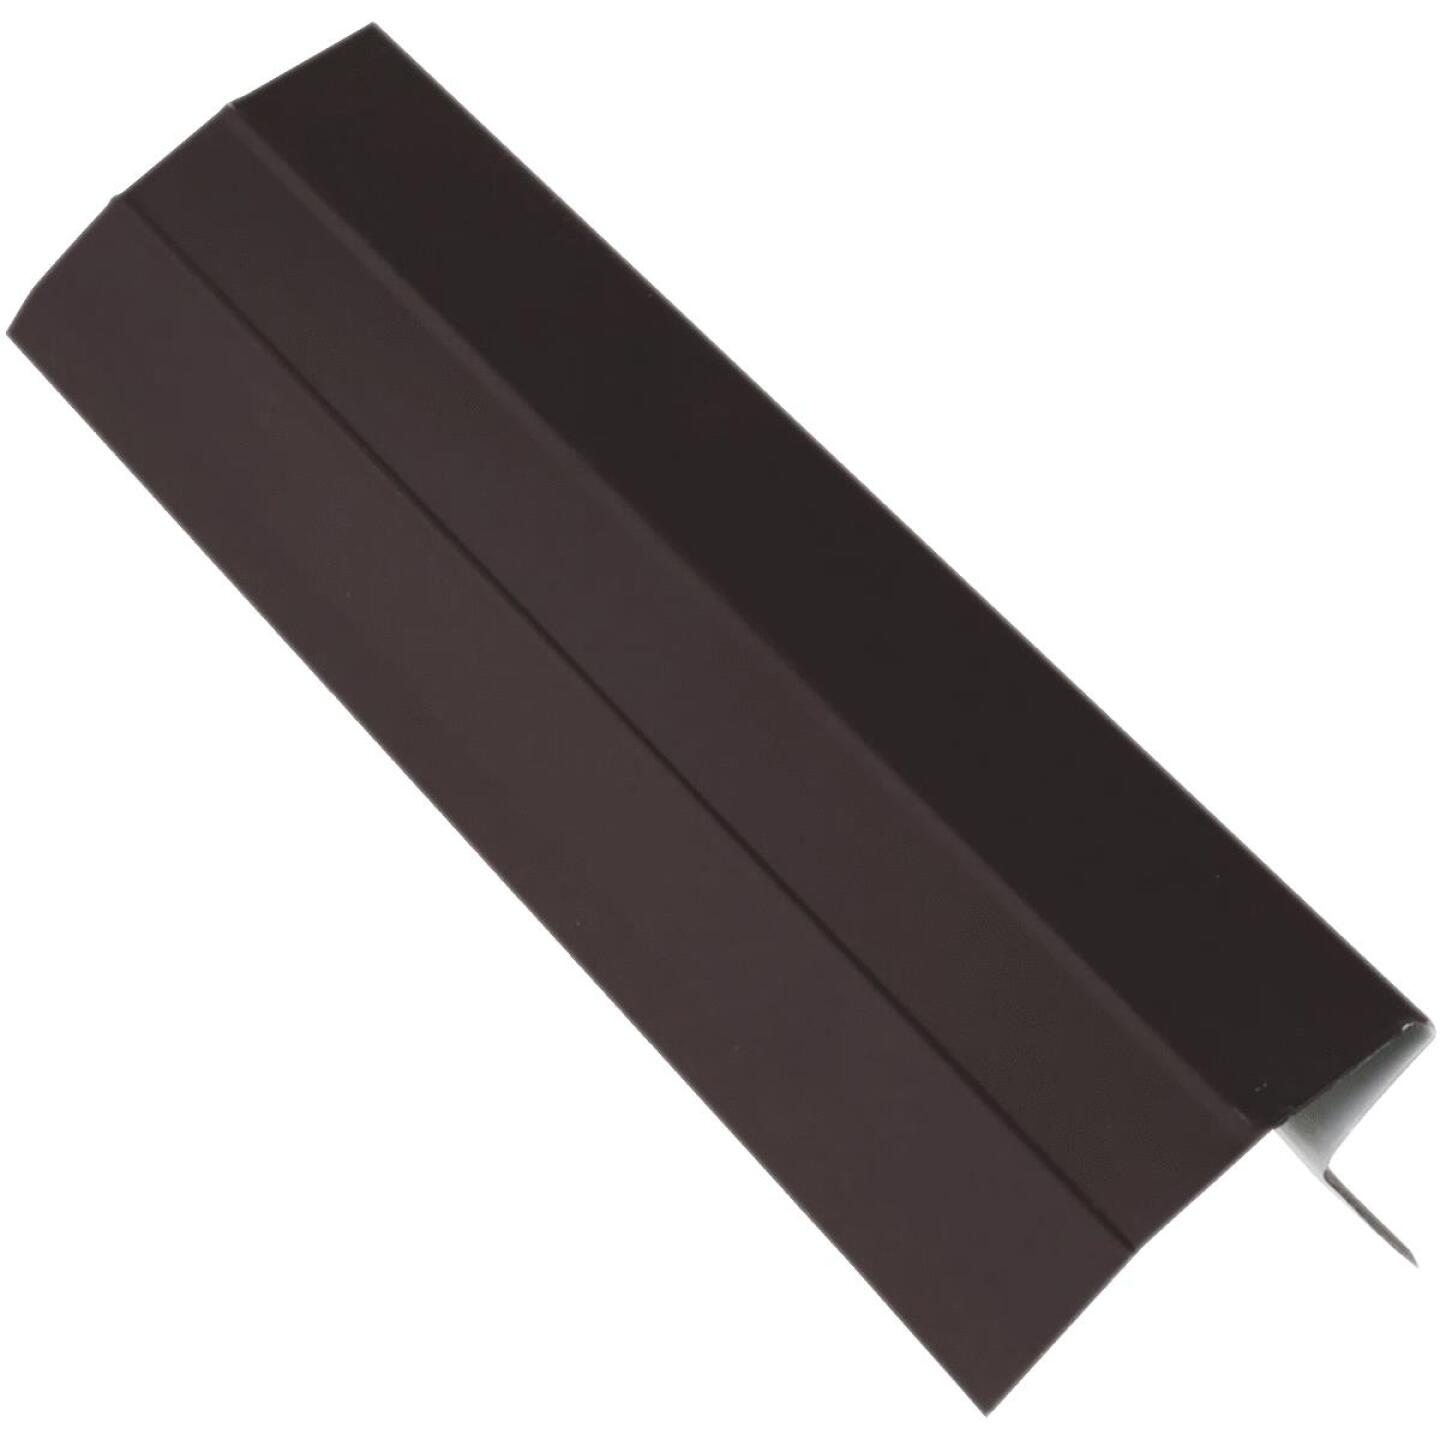 NorWesco D Galvanized Steel Roof & Drip Edge Flashing, Brown Image 1